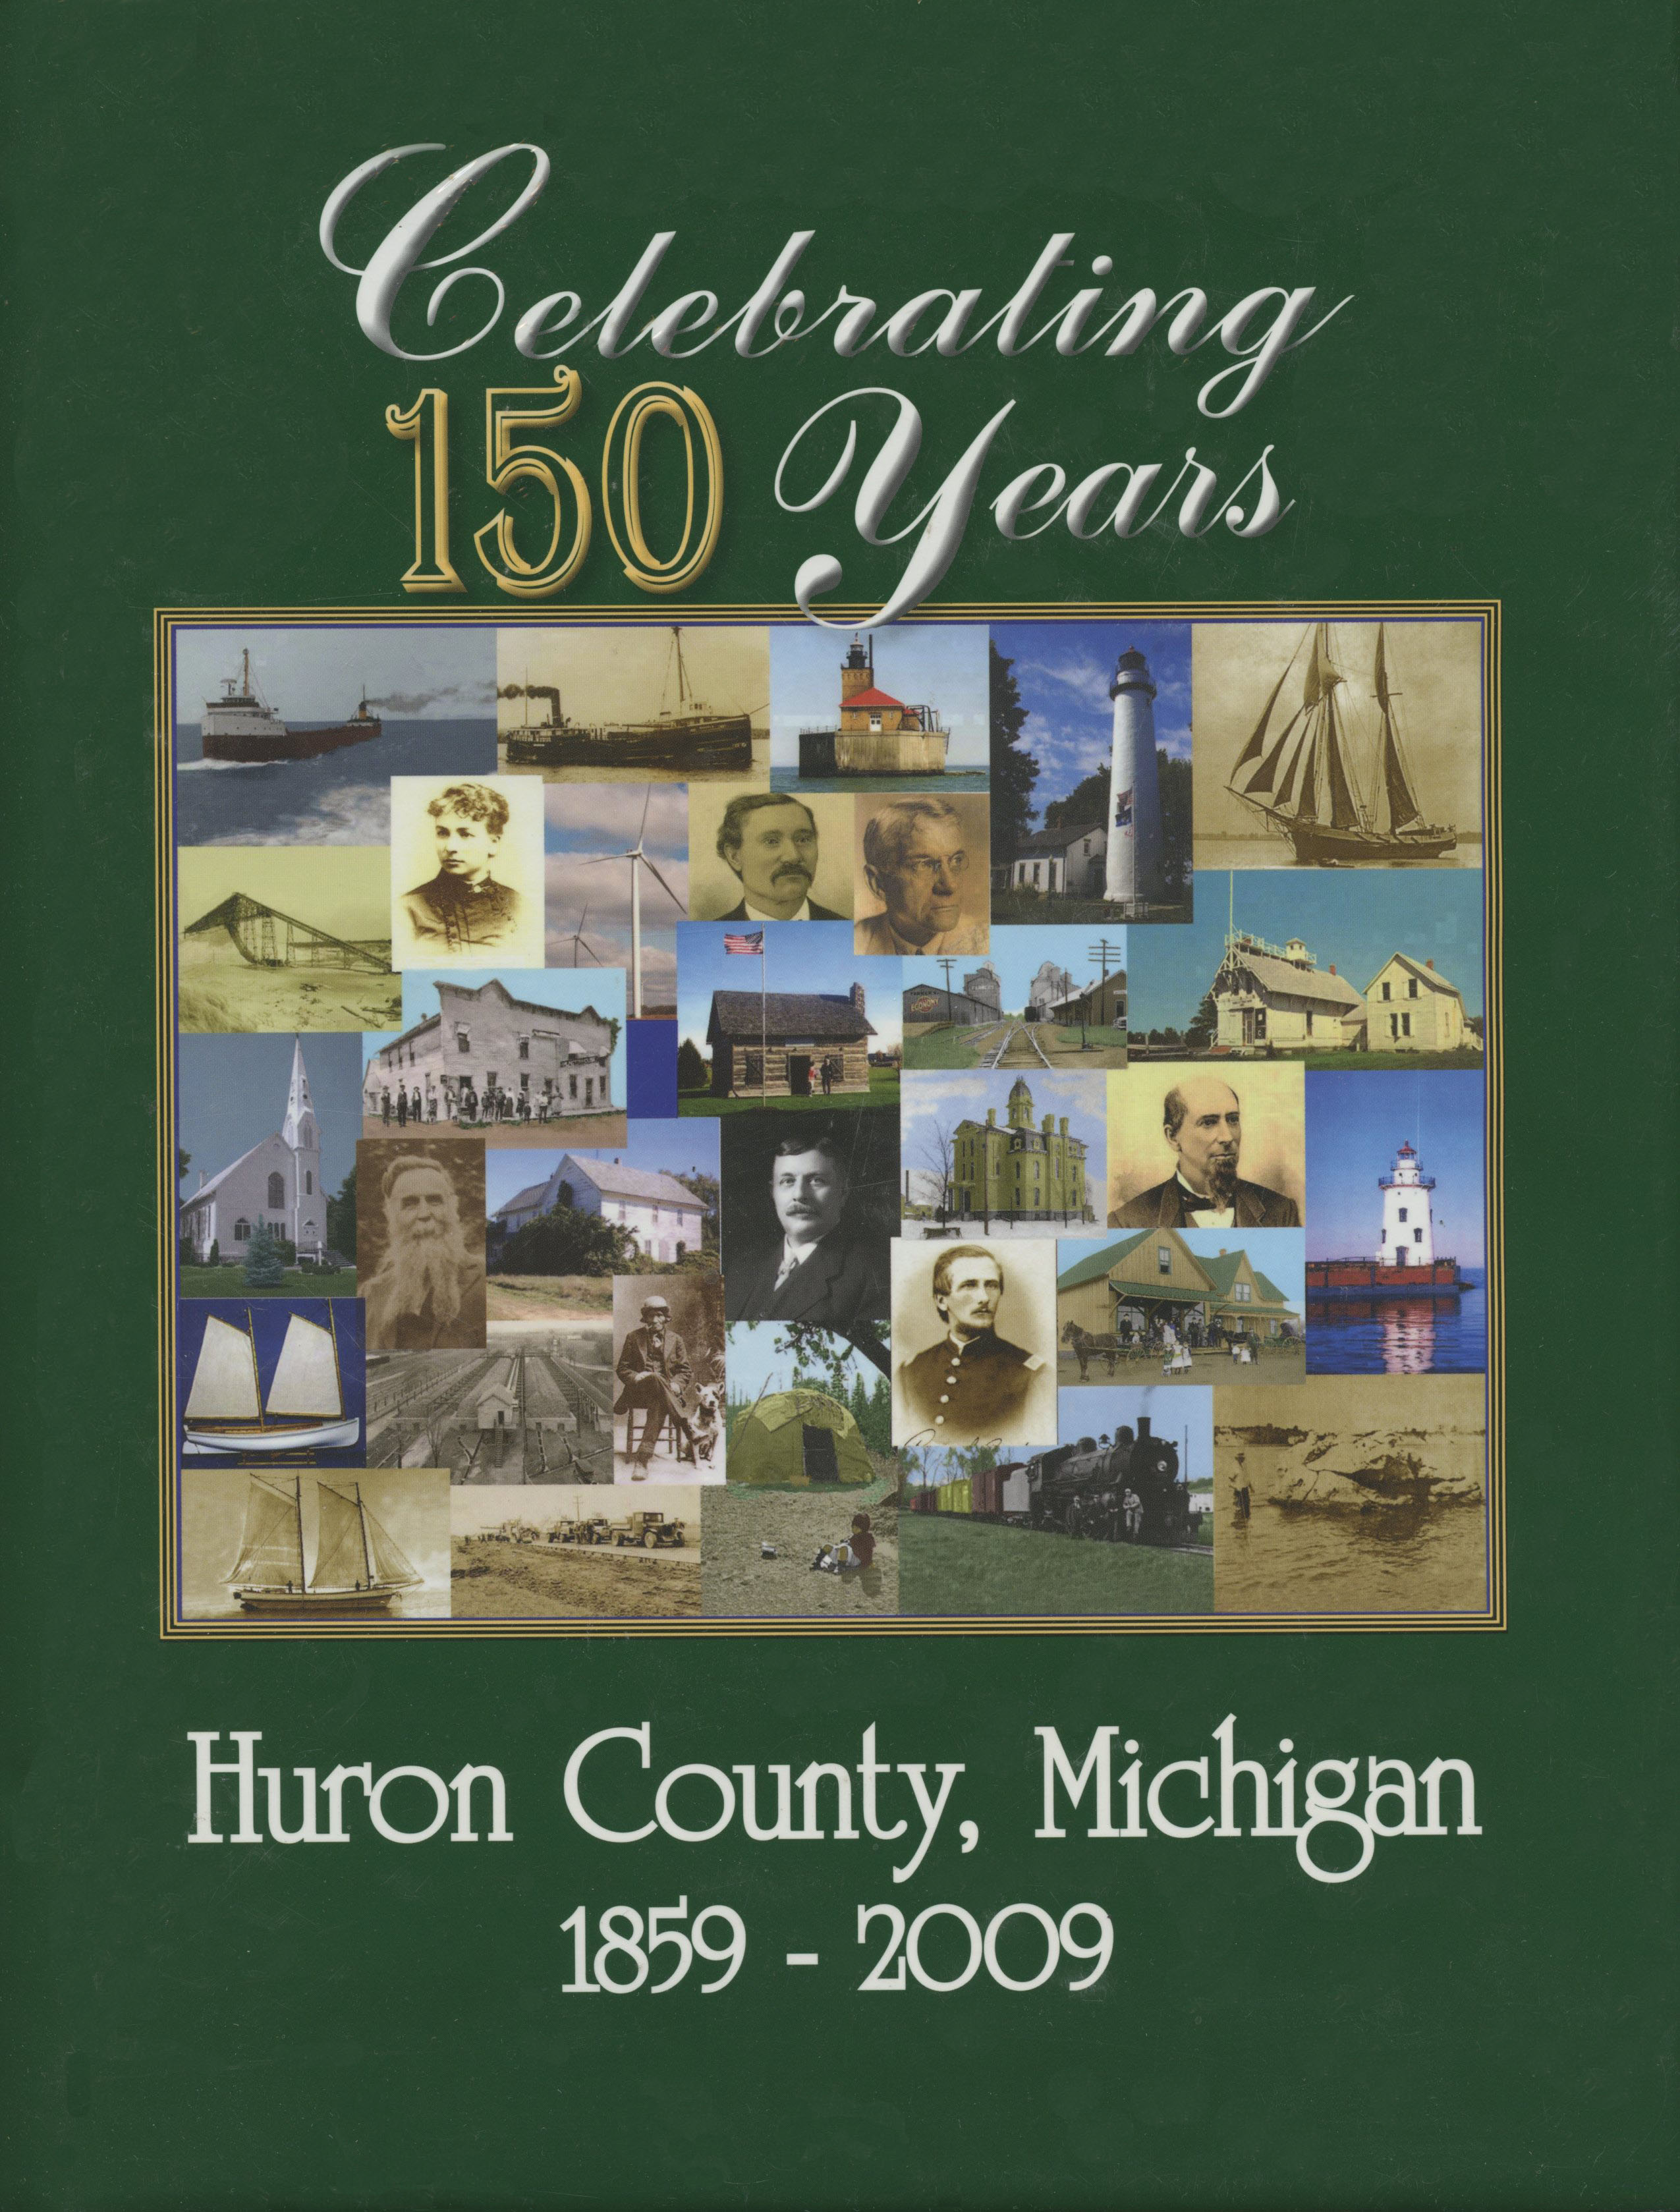 http://pigeonhistoricalsociety.com/wp-content/uploads/2019/01/Huron-Co-1859-2009_edited-1-4.jpg